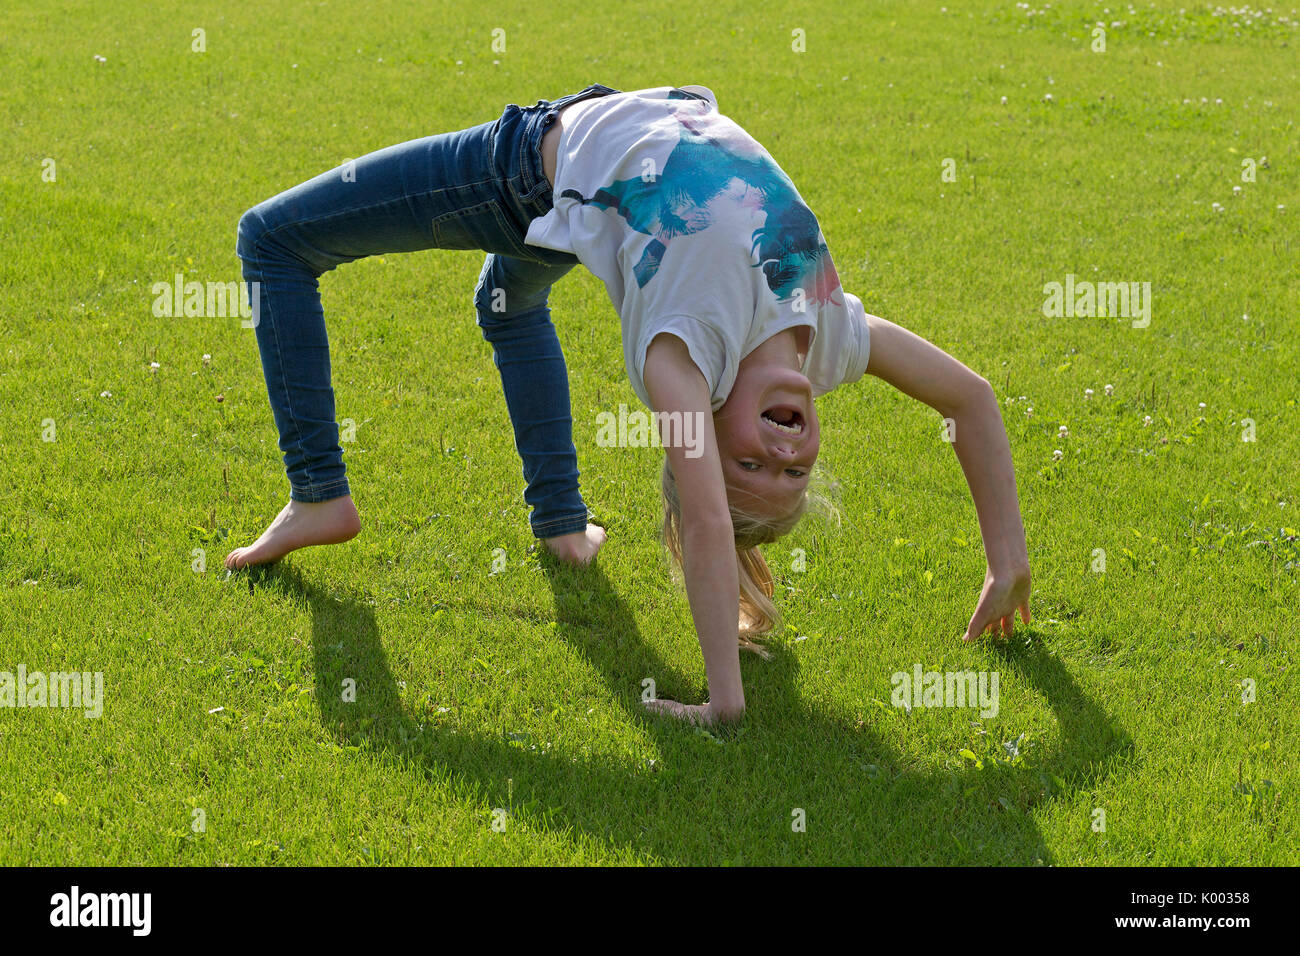 Backbend Stock Photos Amp Backbend Stock Images Alamy